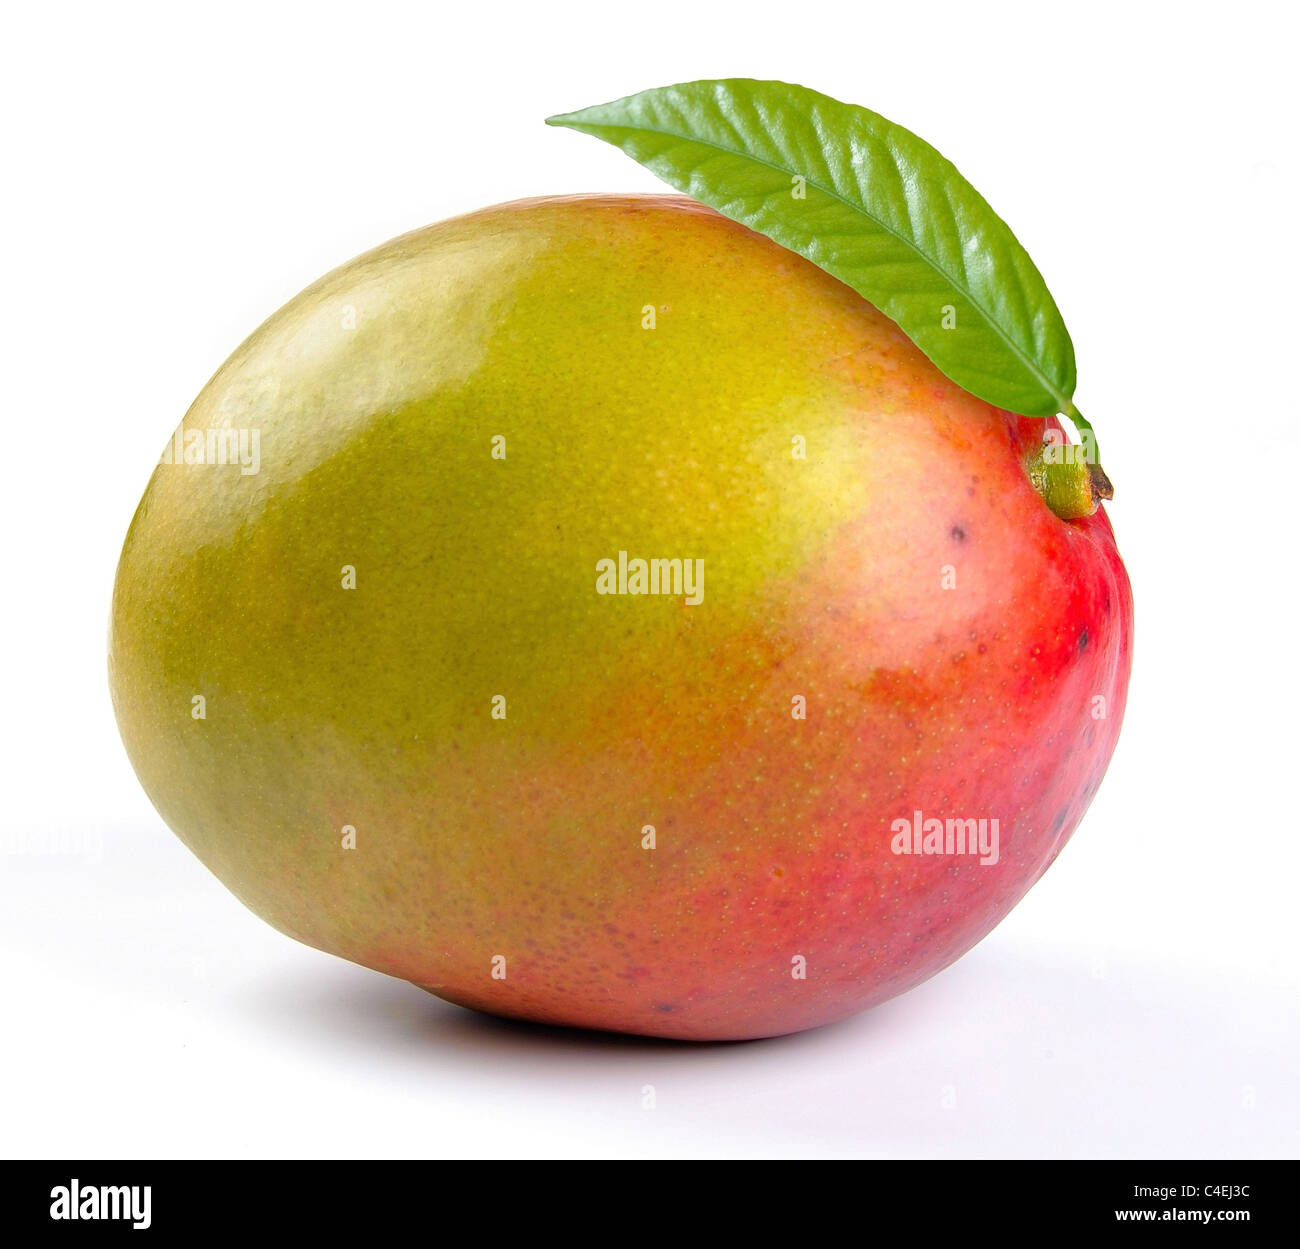 Mango with leaves on a white background - Stock Image